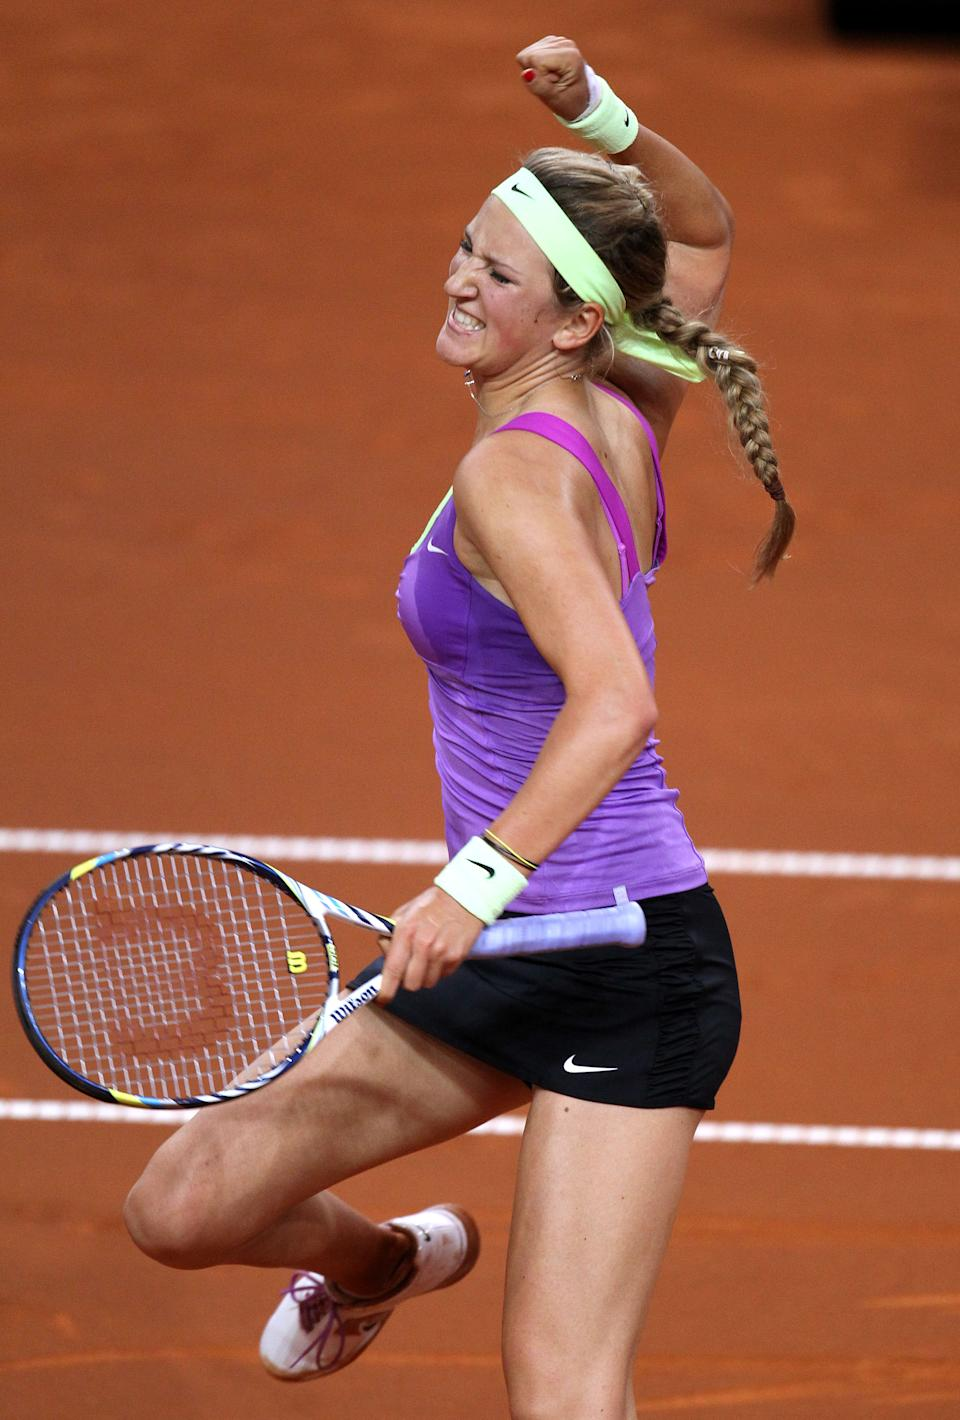 Belarus' Victoria Azarenka celebrates after beating Poland's Agnieszka Radwanska during their semifinal match at the Porsche Tennis Grand Prix in Stuttgart, Germany, Saturday, April 28, 2012. Azarenka won 6-1 and 6-3 to reach Sunday's final. (AP Photo/Michael Probst)